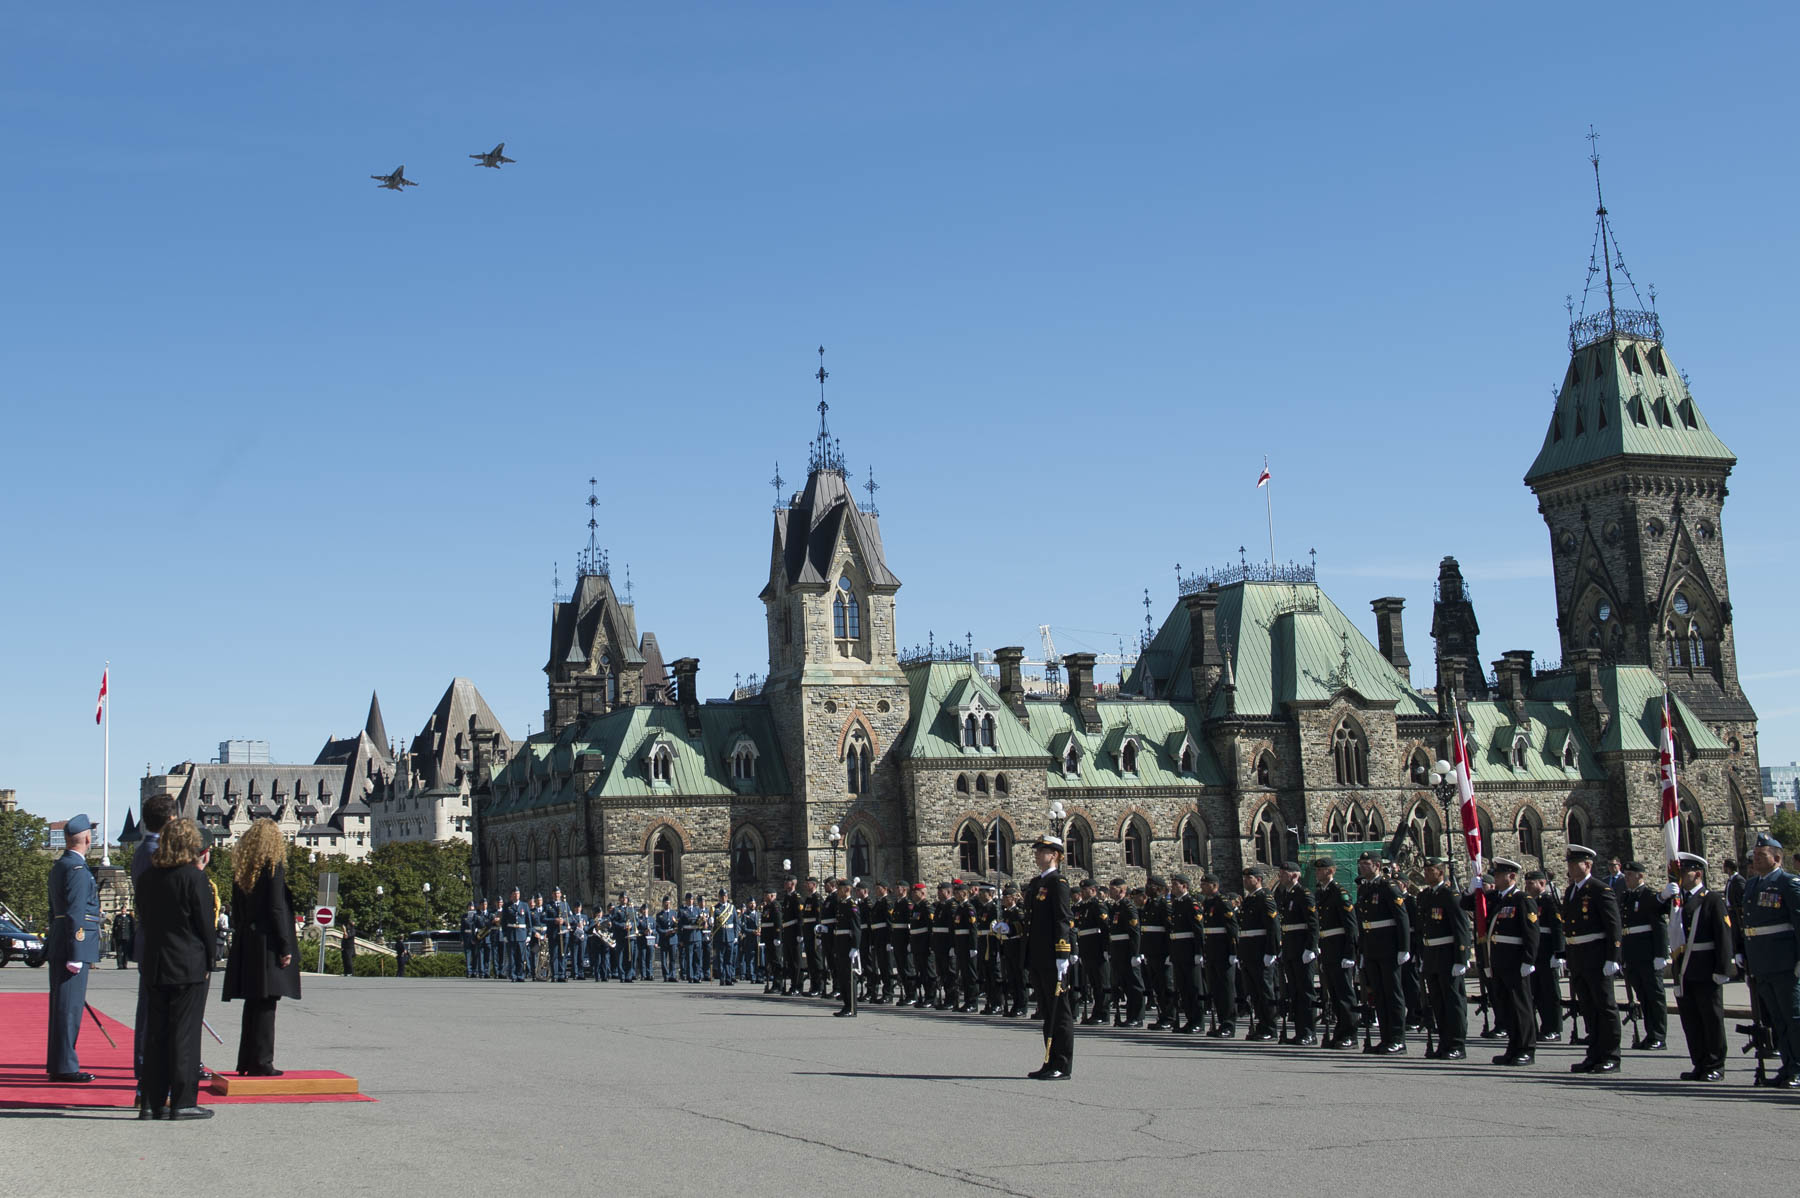 The military honours included a CF-18 flypast.